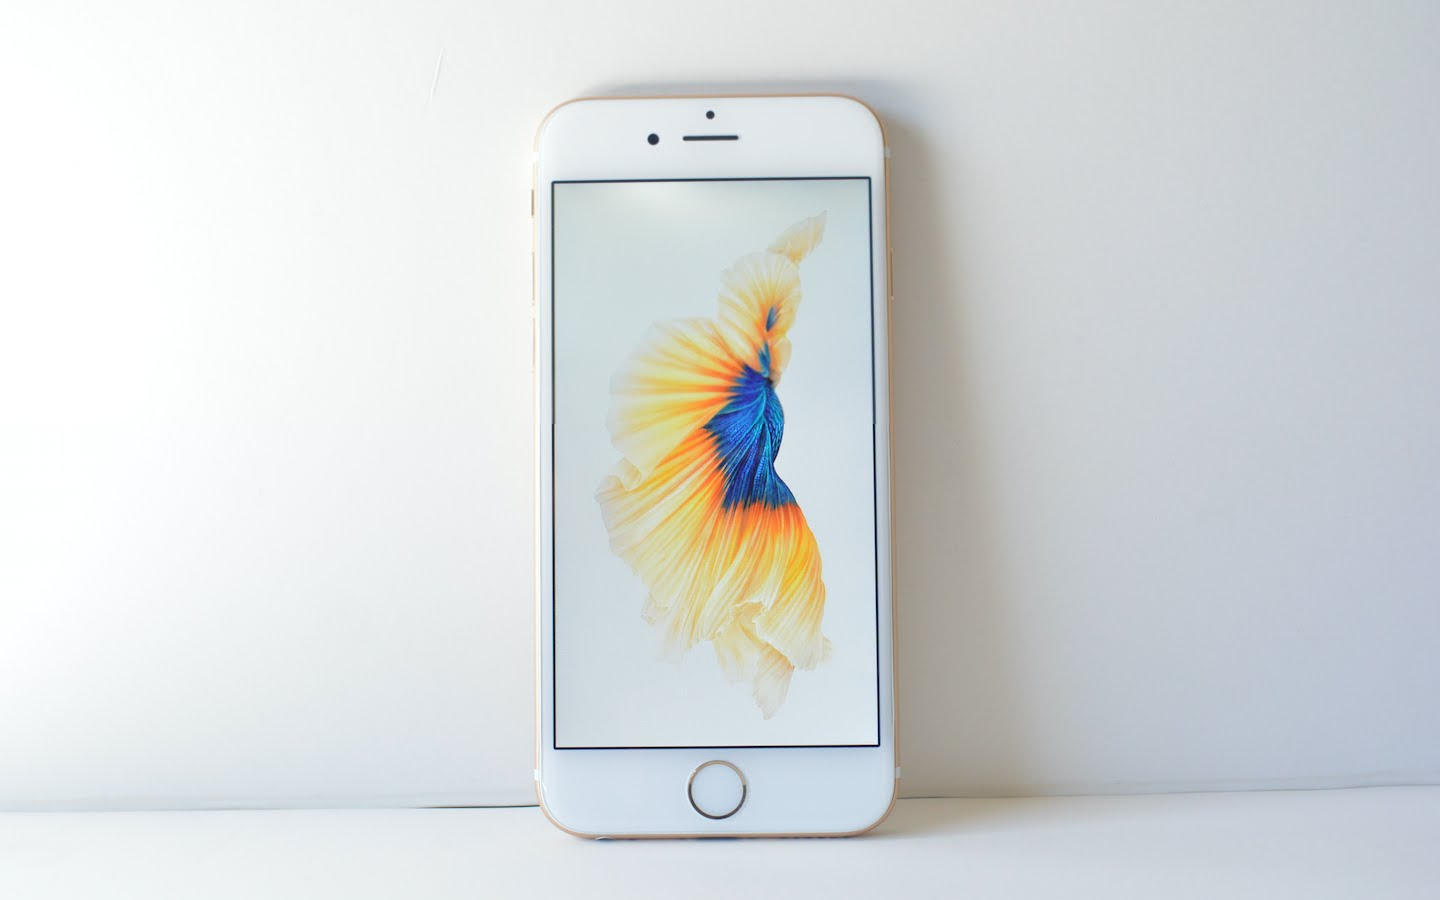 Dynamic Wallpapers For IPhone 6s